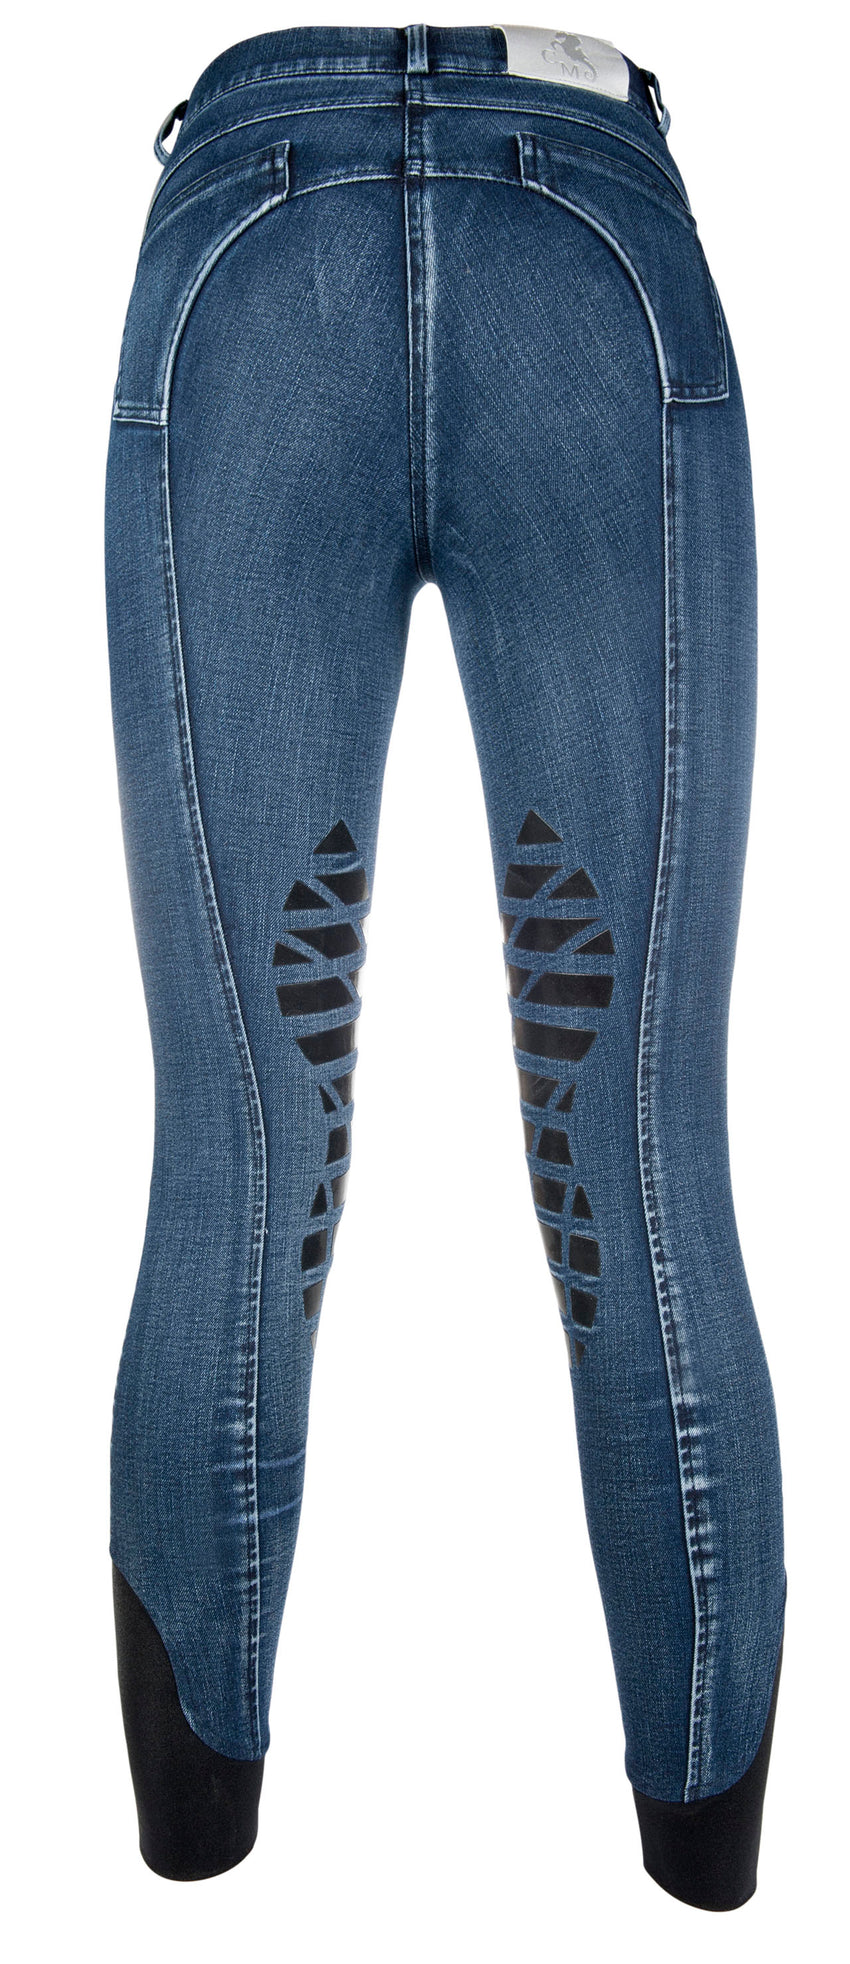 Denim Breeches with silicone knee patch